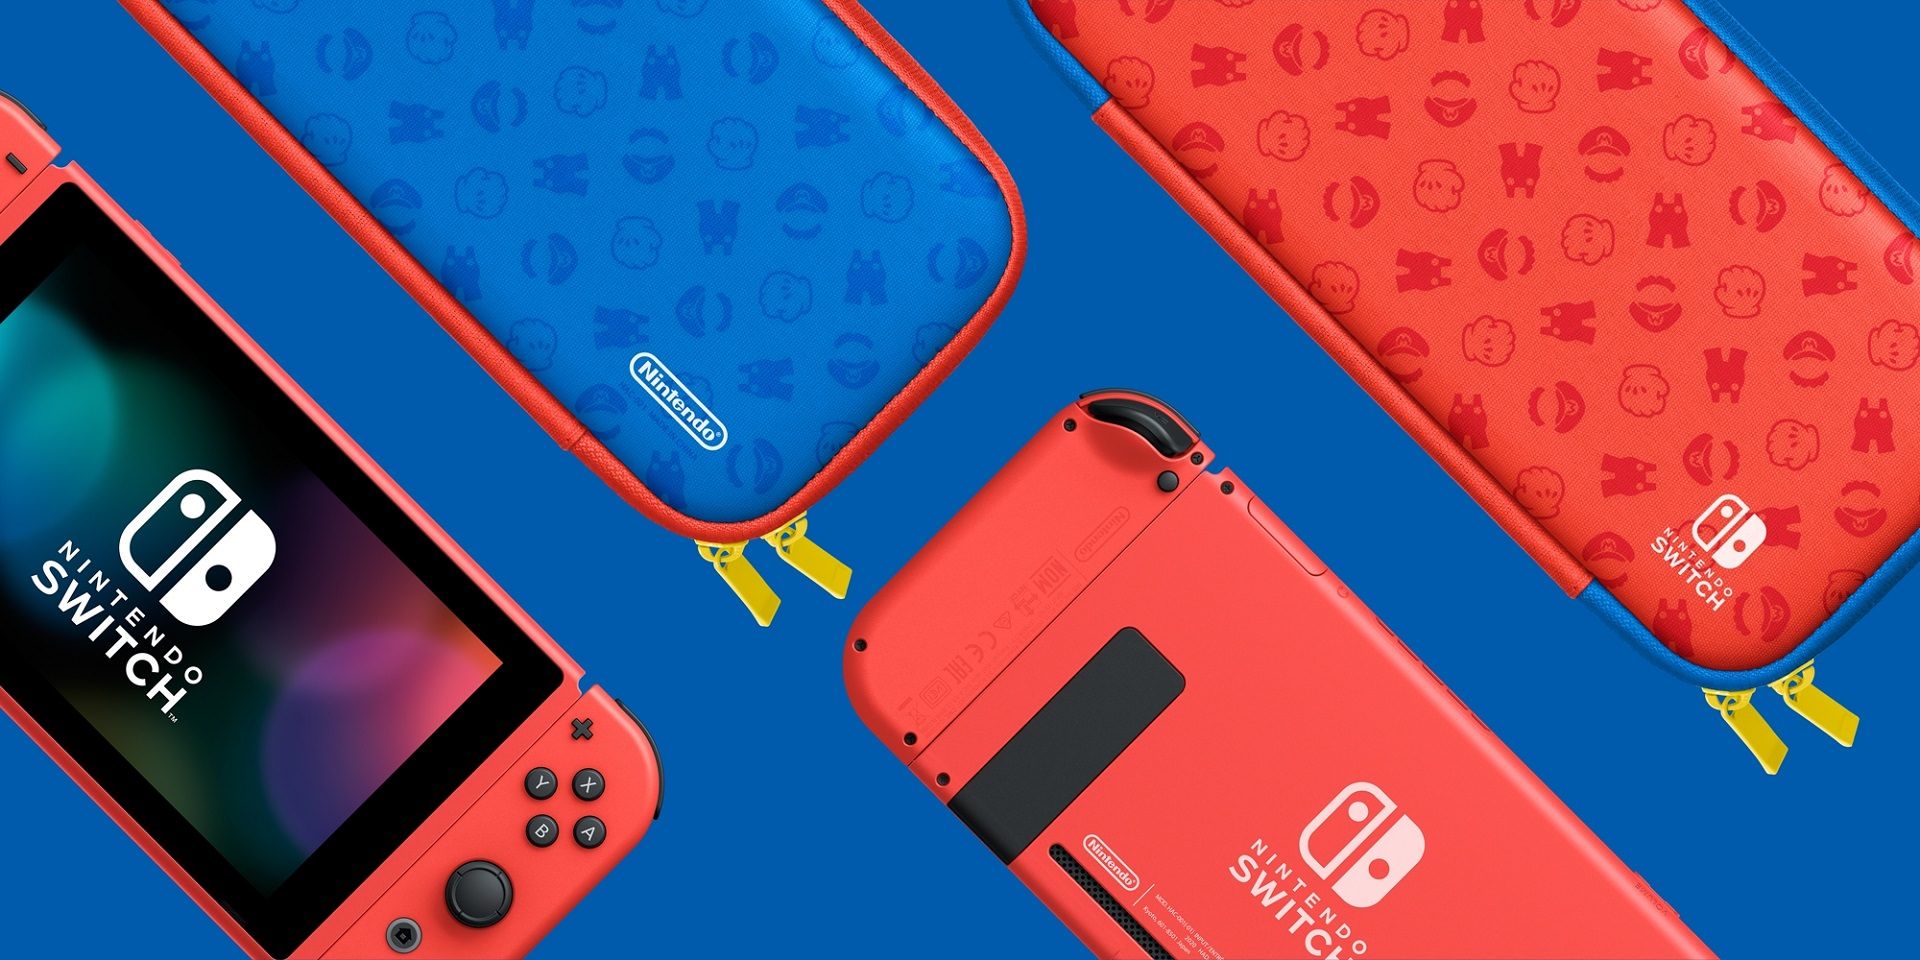 Mario-Themed Special Edition Switch